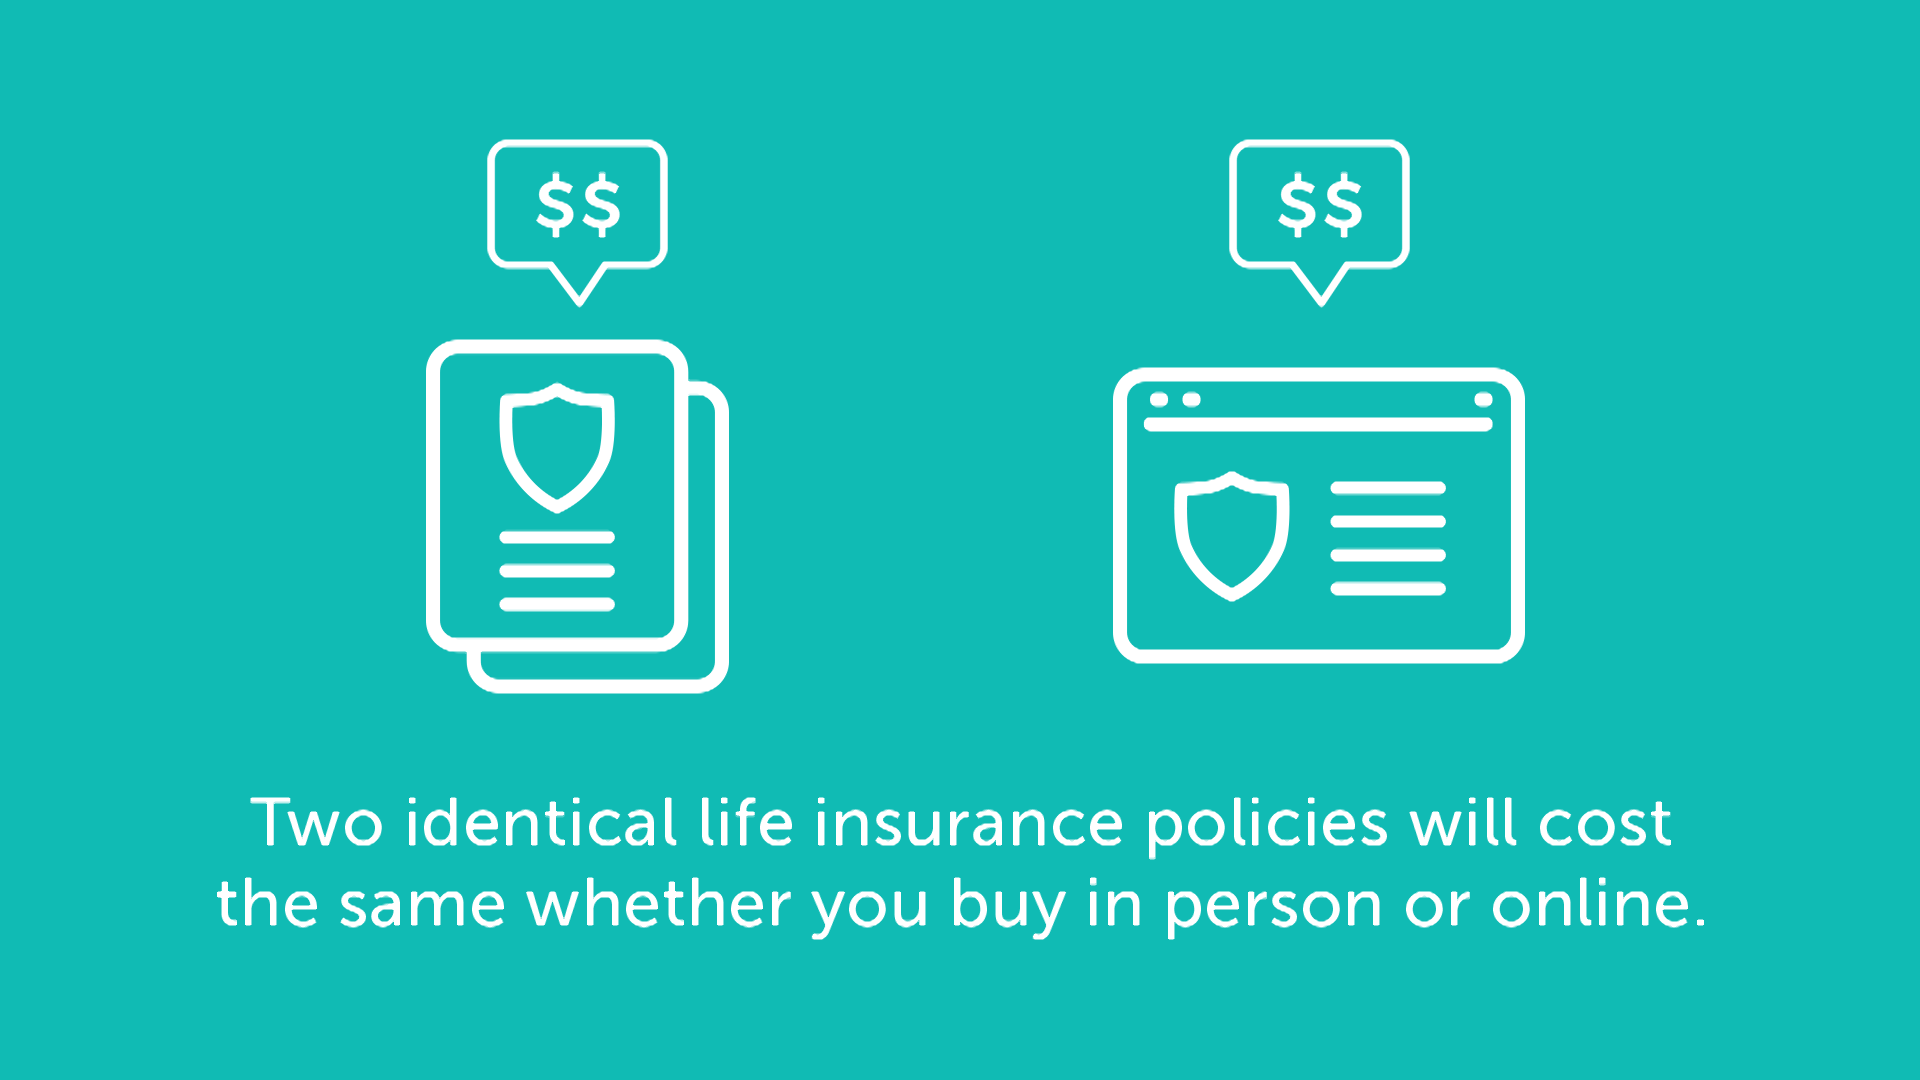 buying life insurance online is the same price as buying from agent